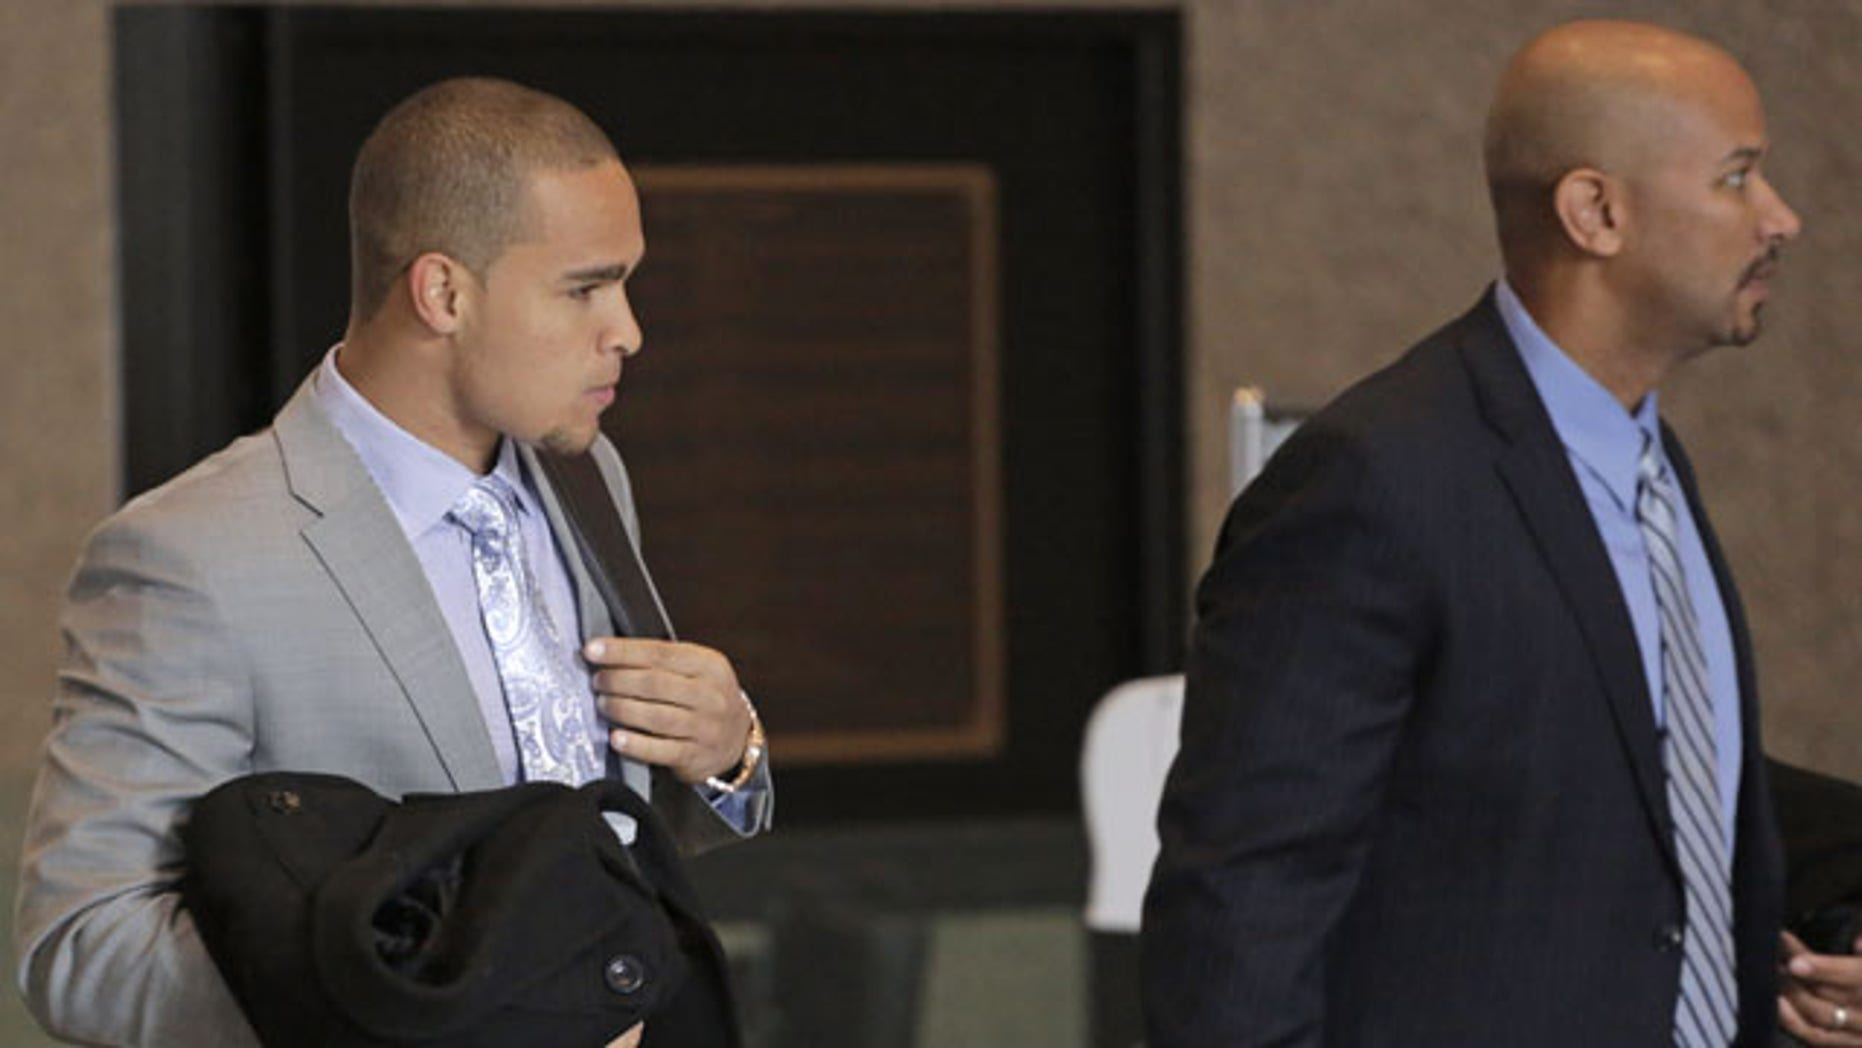 February 18, 2014: College Athletes Players Association designated president Ramogi Huma, right, and Northwestern University Wildcats' outgoing senior quarterback Kain Colter make their way to the beginning of three days of hearings before the National Labor Relations Board in Chicago. (AP)